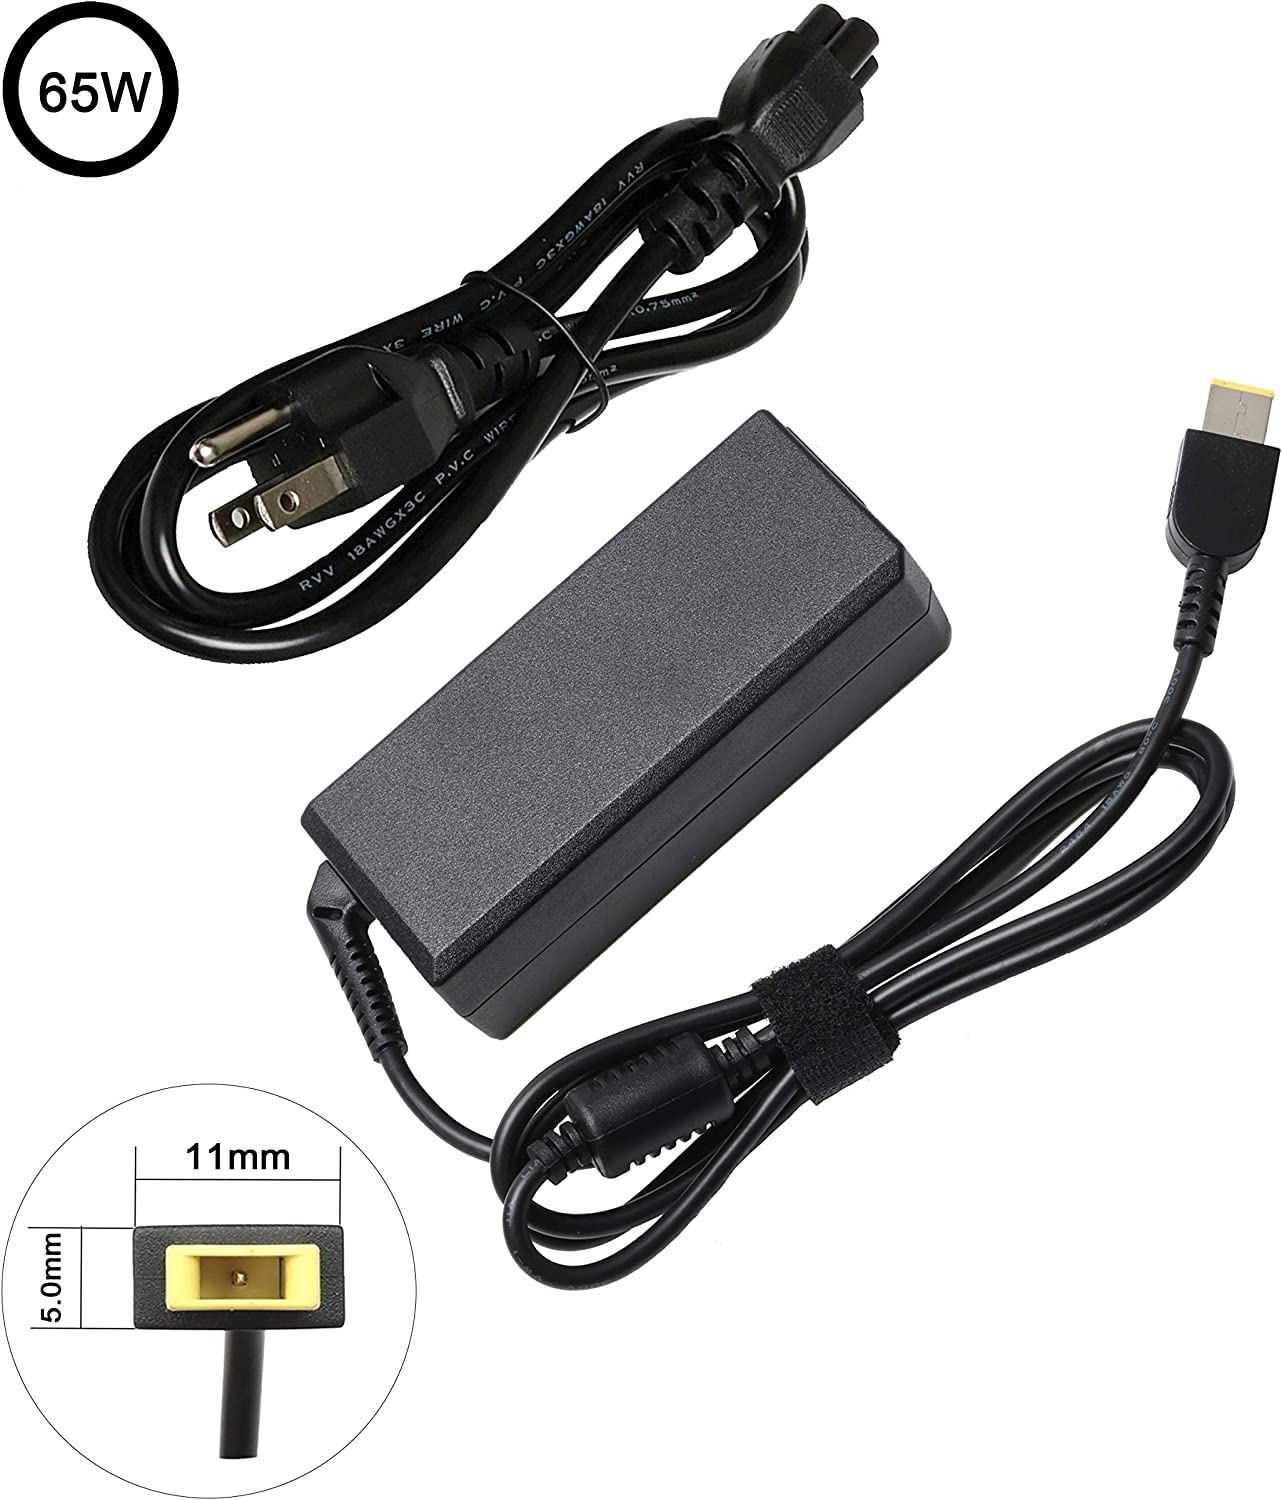 65W AC Adapter Charger for Lenovo ADLX45NCC3A ADLX45NLC3A ADLX45NDC3A ADLX65NCC3A ADLX65NLC3A 0B47481 ADLX45NCC2A ADLX65NDC3A 0B47030 ADLX45NDC2A ADLX65NCC2A ADLX65NLC2A ADLX65SDC2A ADLX45NLC2A